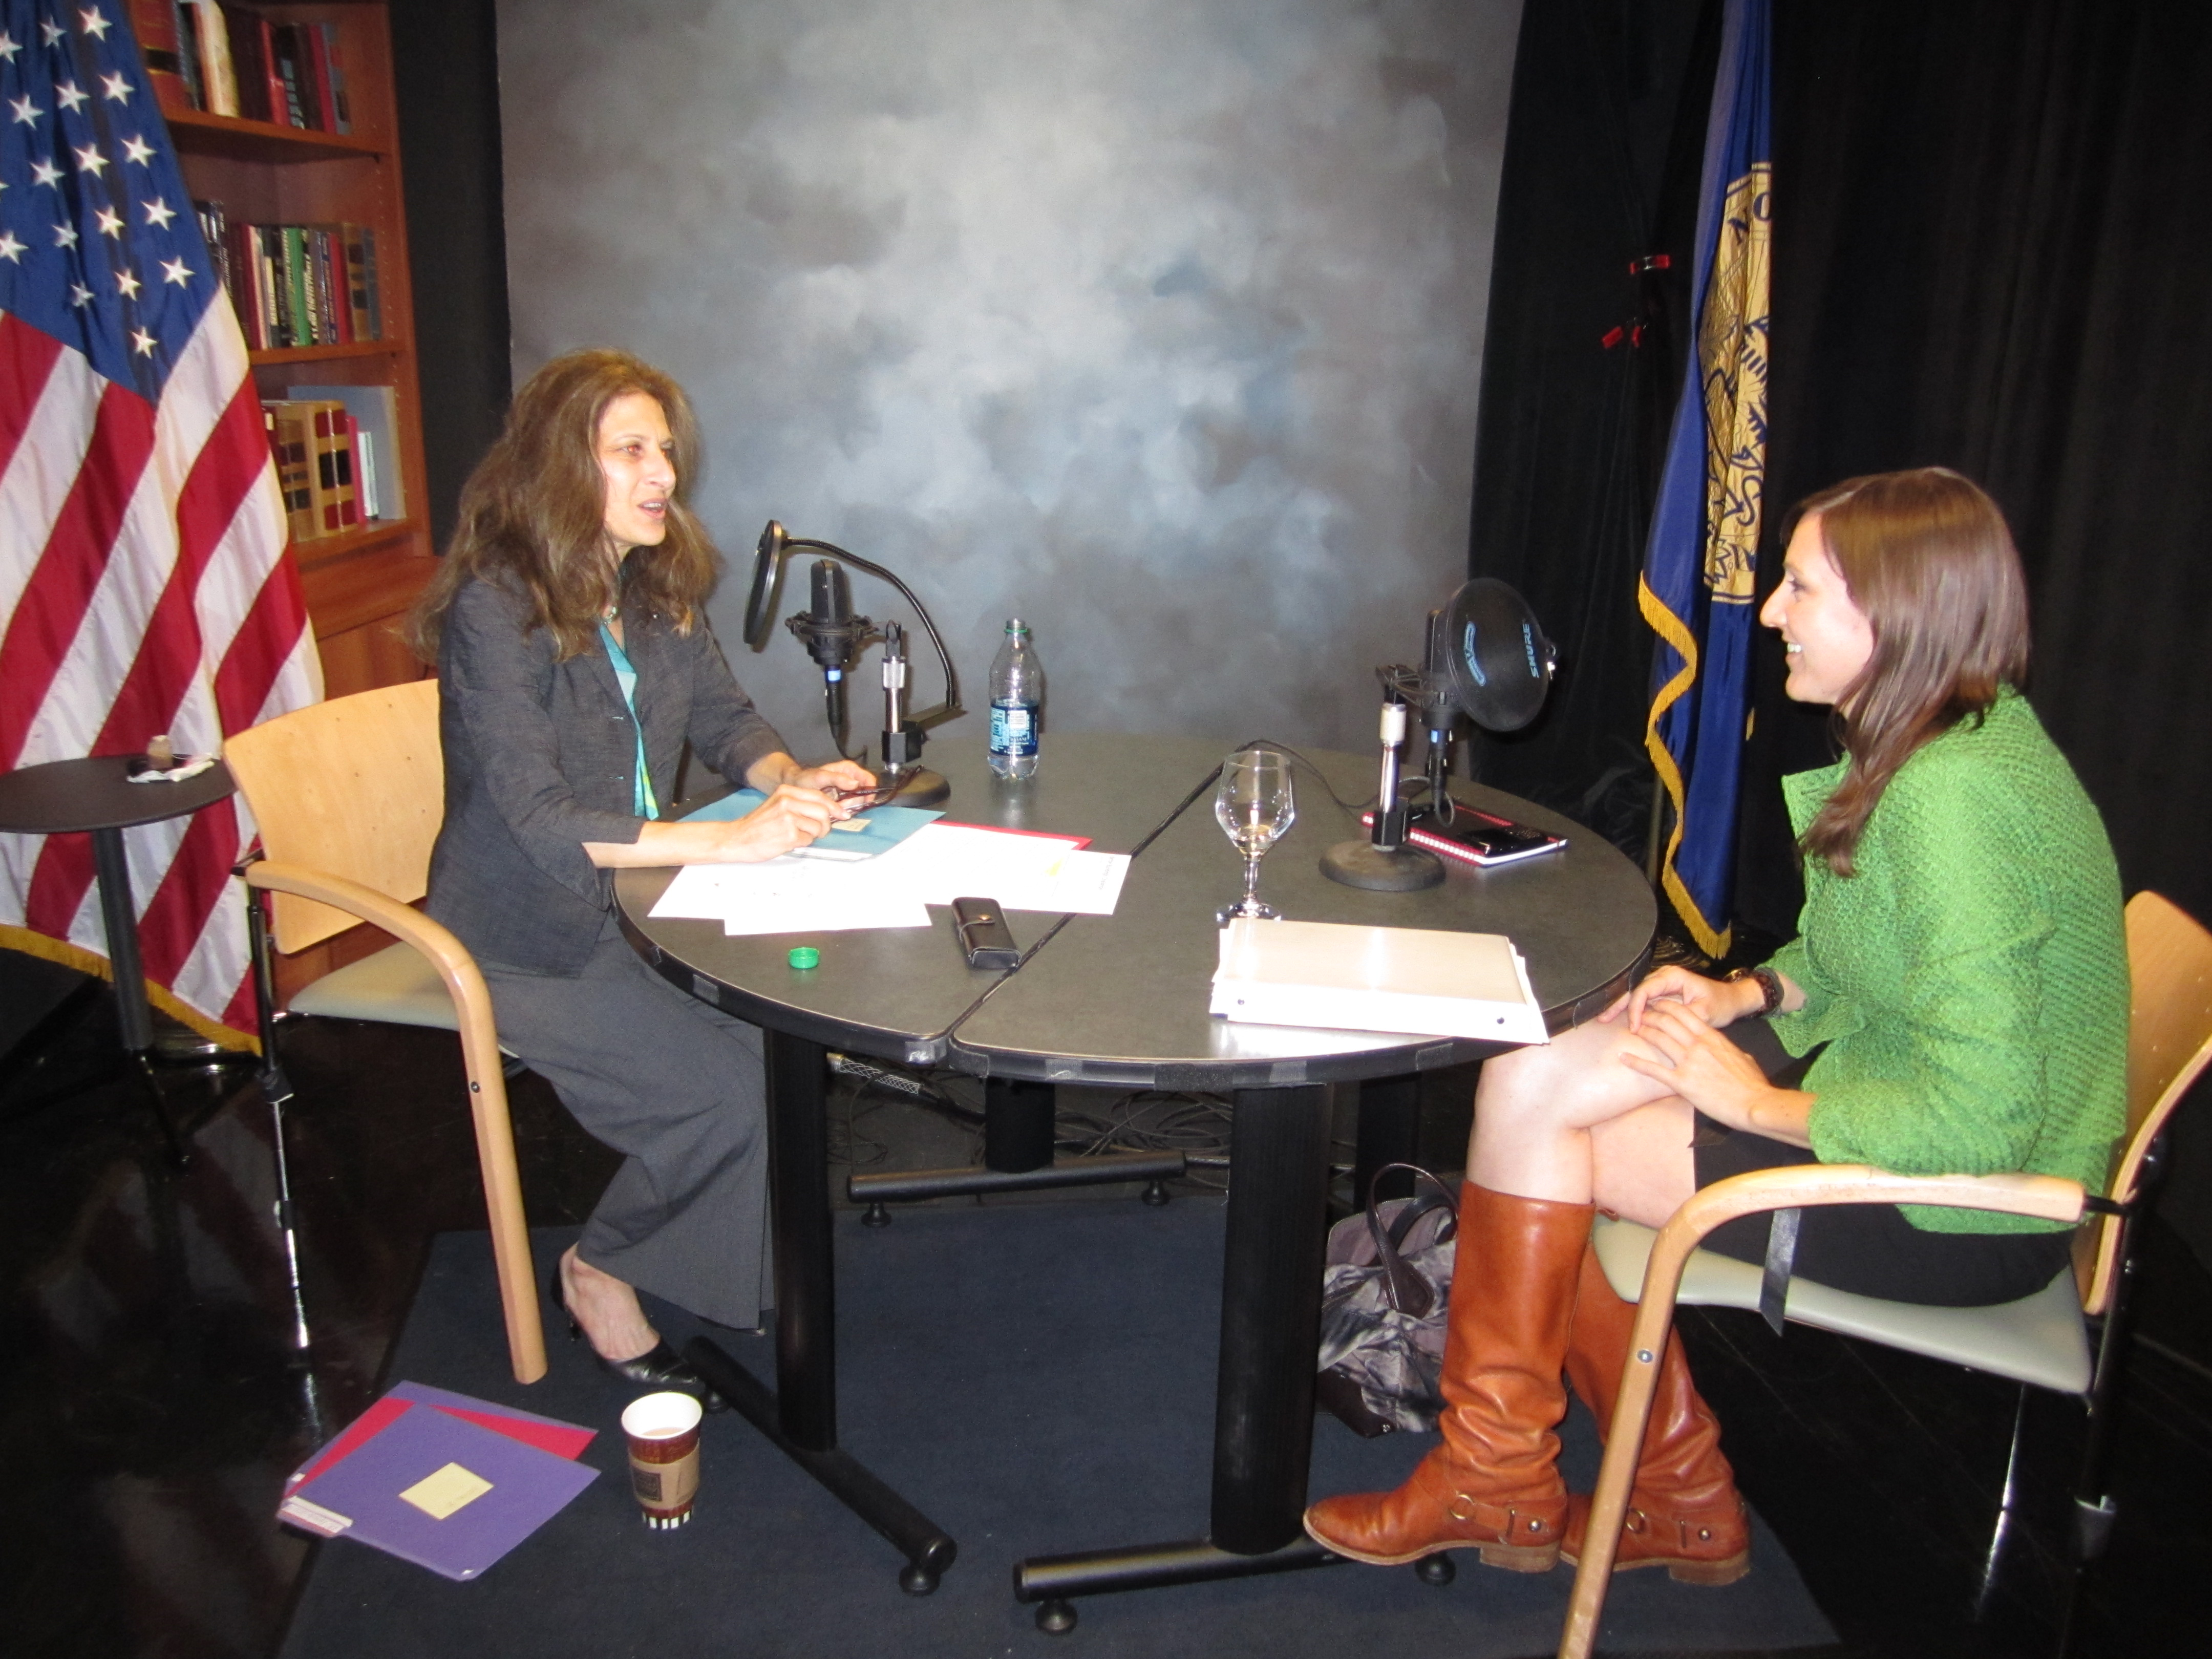 Caption: Joan Michelson (l) of Green Connections Radio and Jaime Carlson (r) of the US Dept of Energy